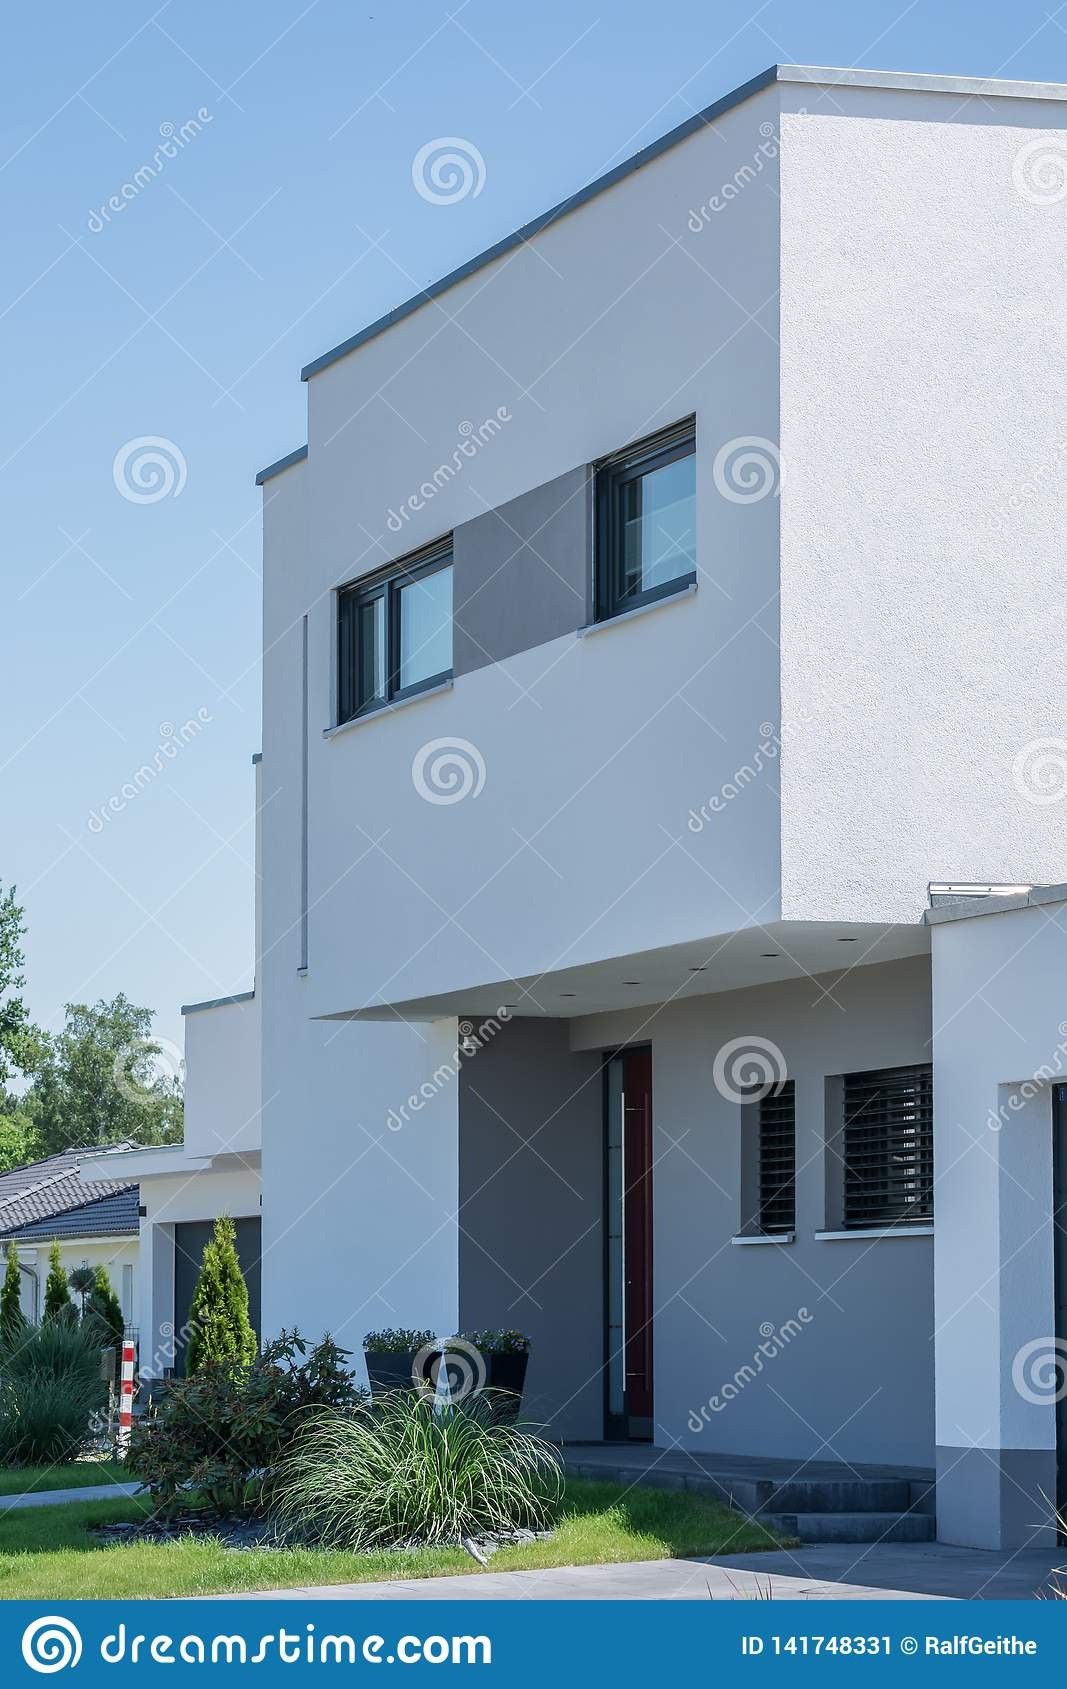 entrance area modern residential building exterior entrance modern newly built house front yard seen public